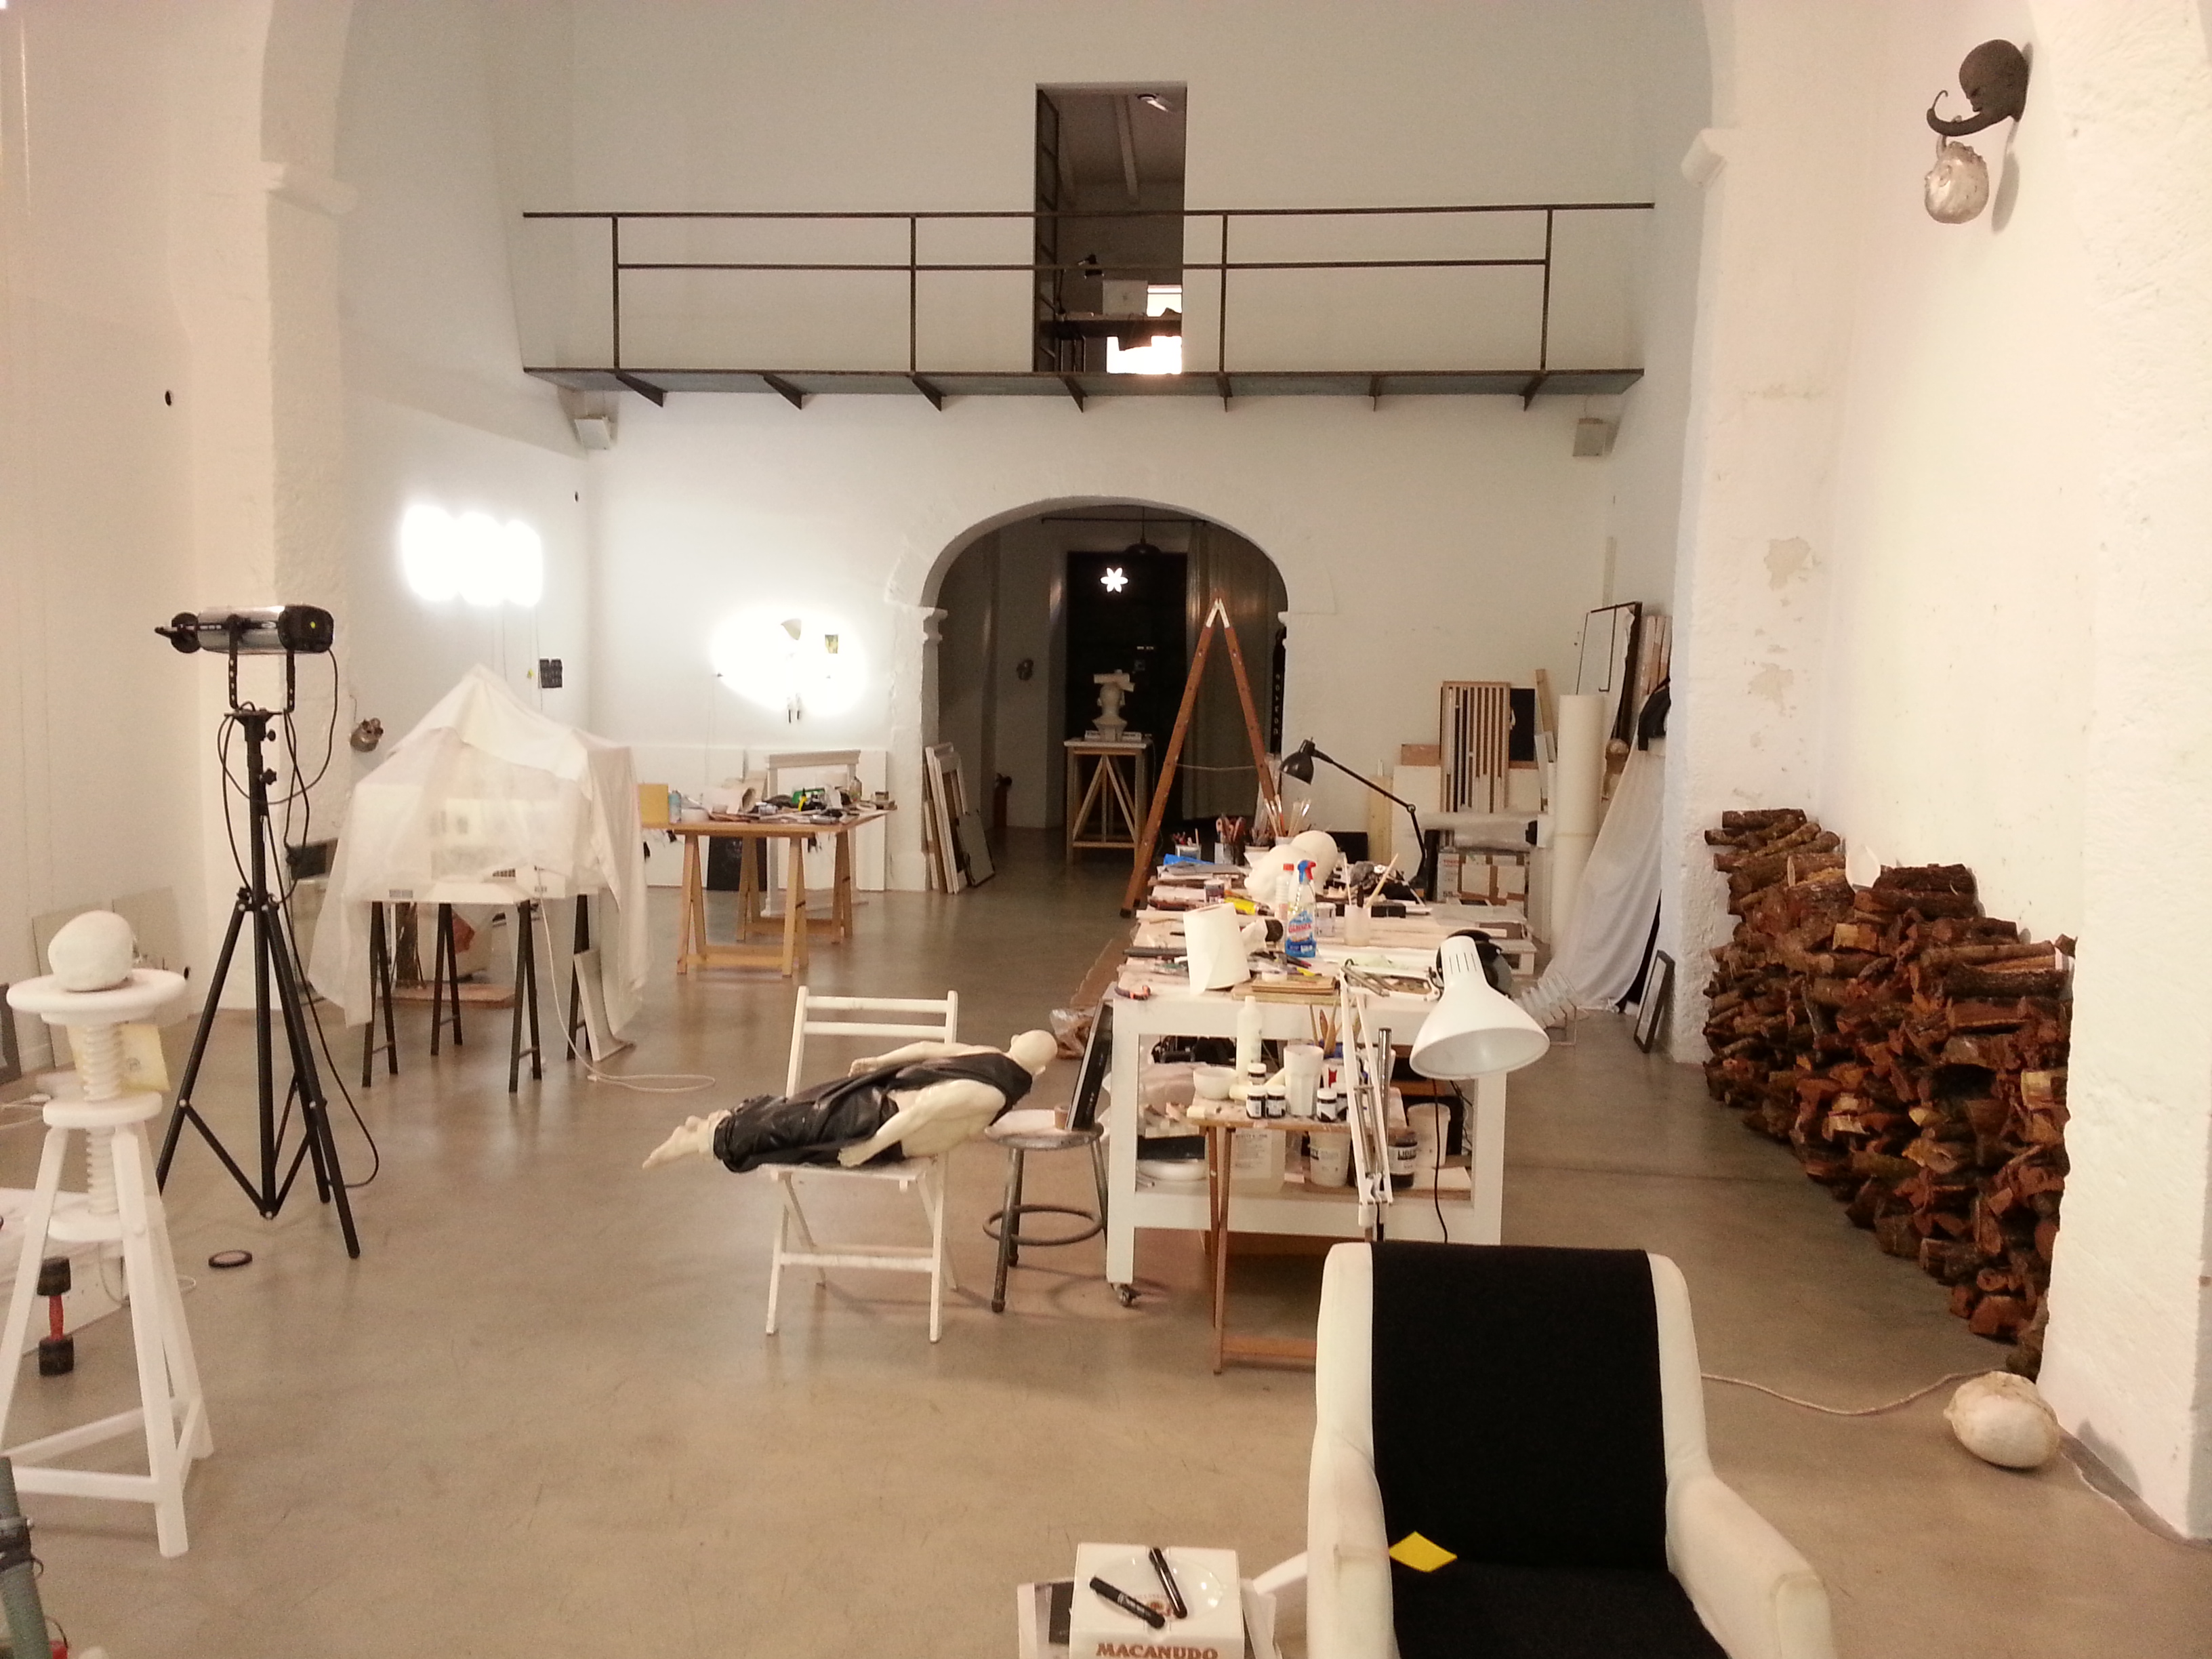 Bernardi Roig's studio. Photo: Vesela Sretenovic